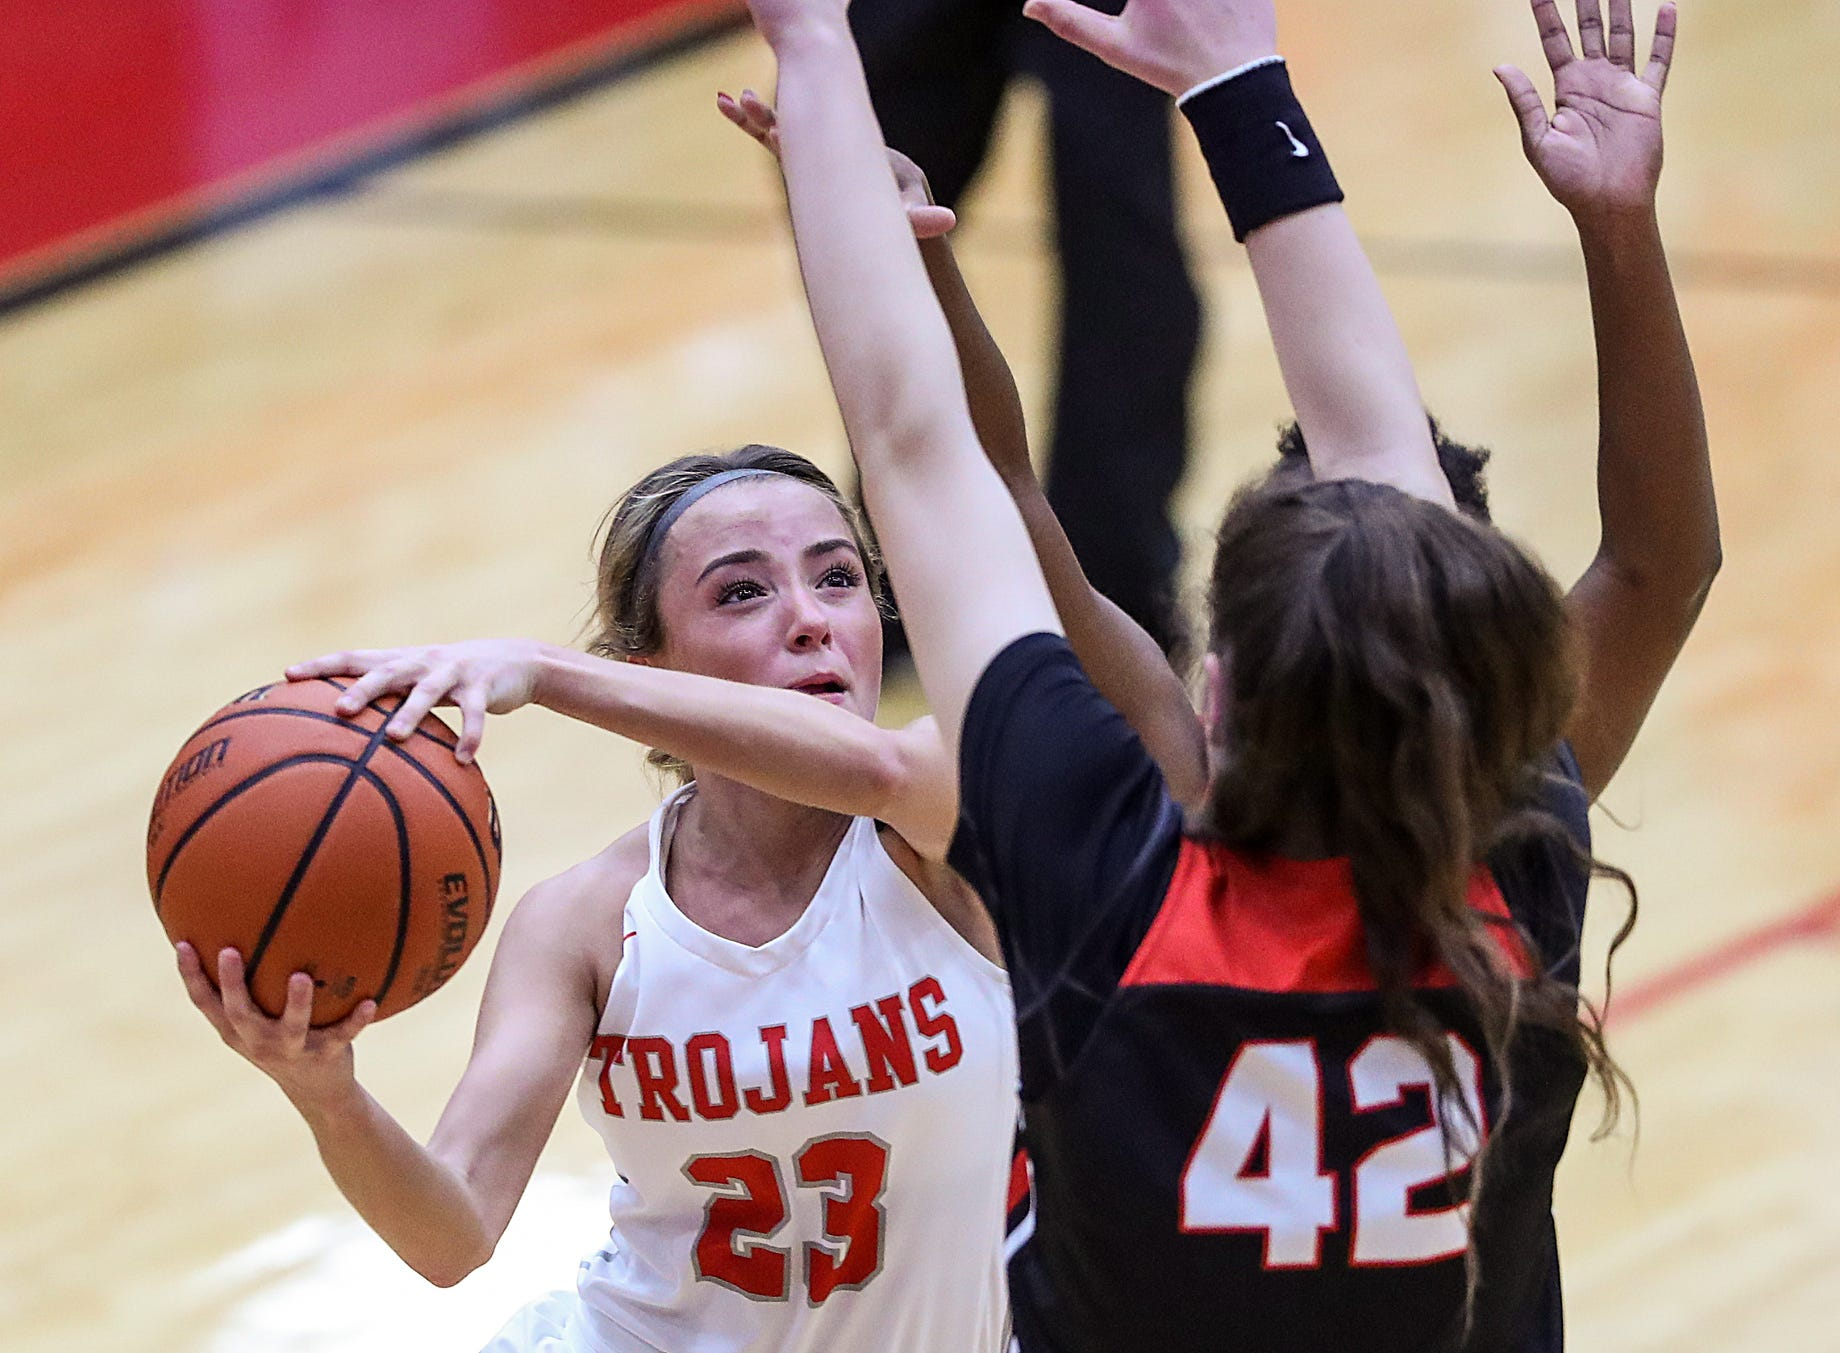 Center Grove Trojans guard Emma Utterback (23) takes a shot between North Central defenders in the first half of the game at Center Grove High School in Greenwood, Ind., Thursday, Jan. 10, 2019. Center Grove defeated North Central, 51-44.